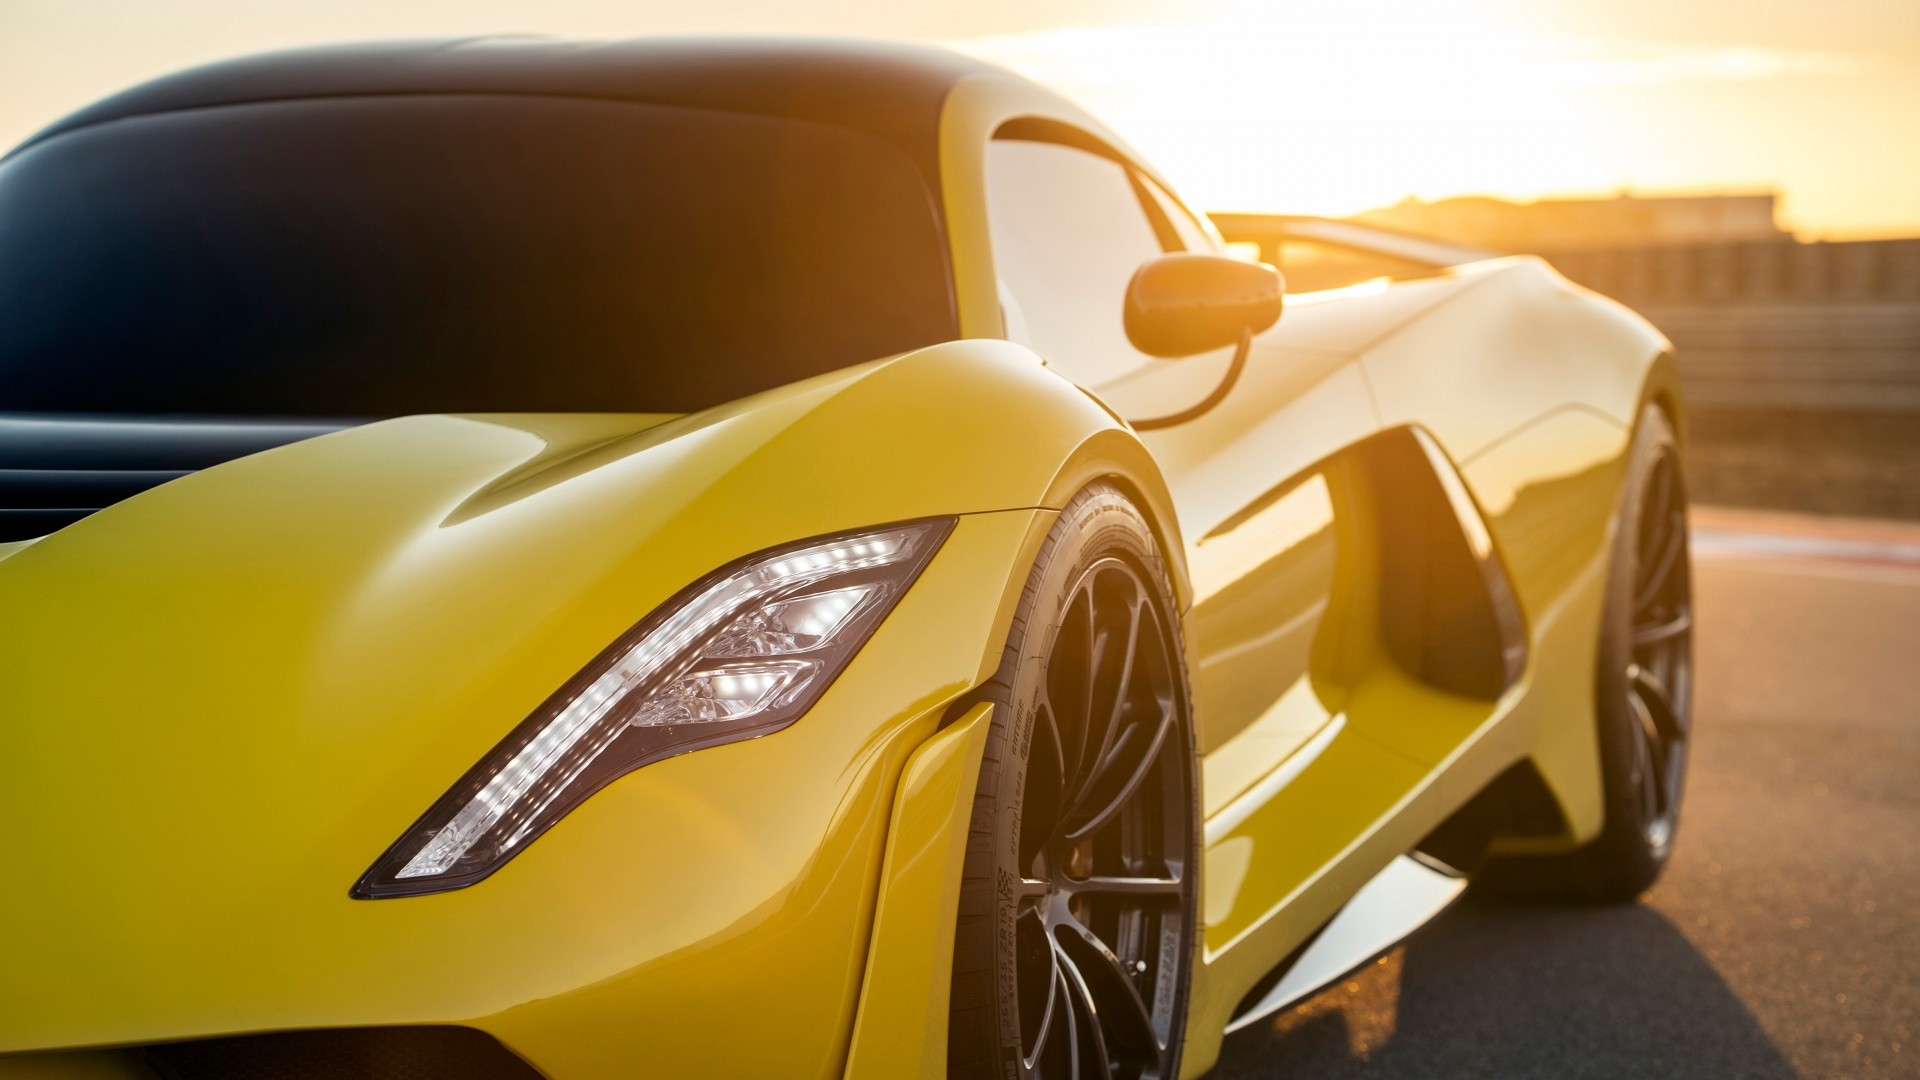 Fastest Car In The World Wallpaper Hd 2019 Hennessey Venom F5 4k Wallpaper Hd Car Wallpapers